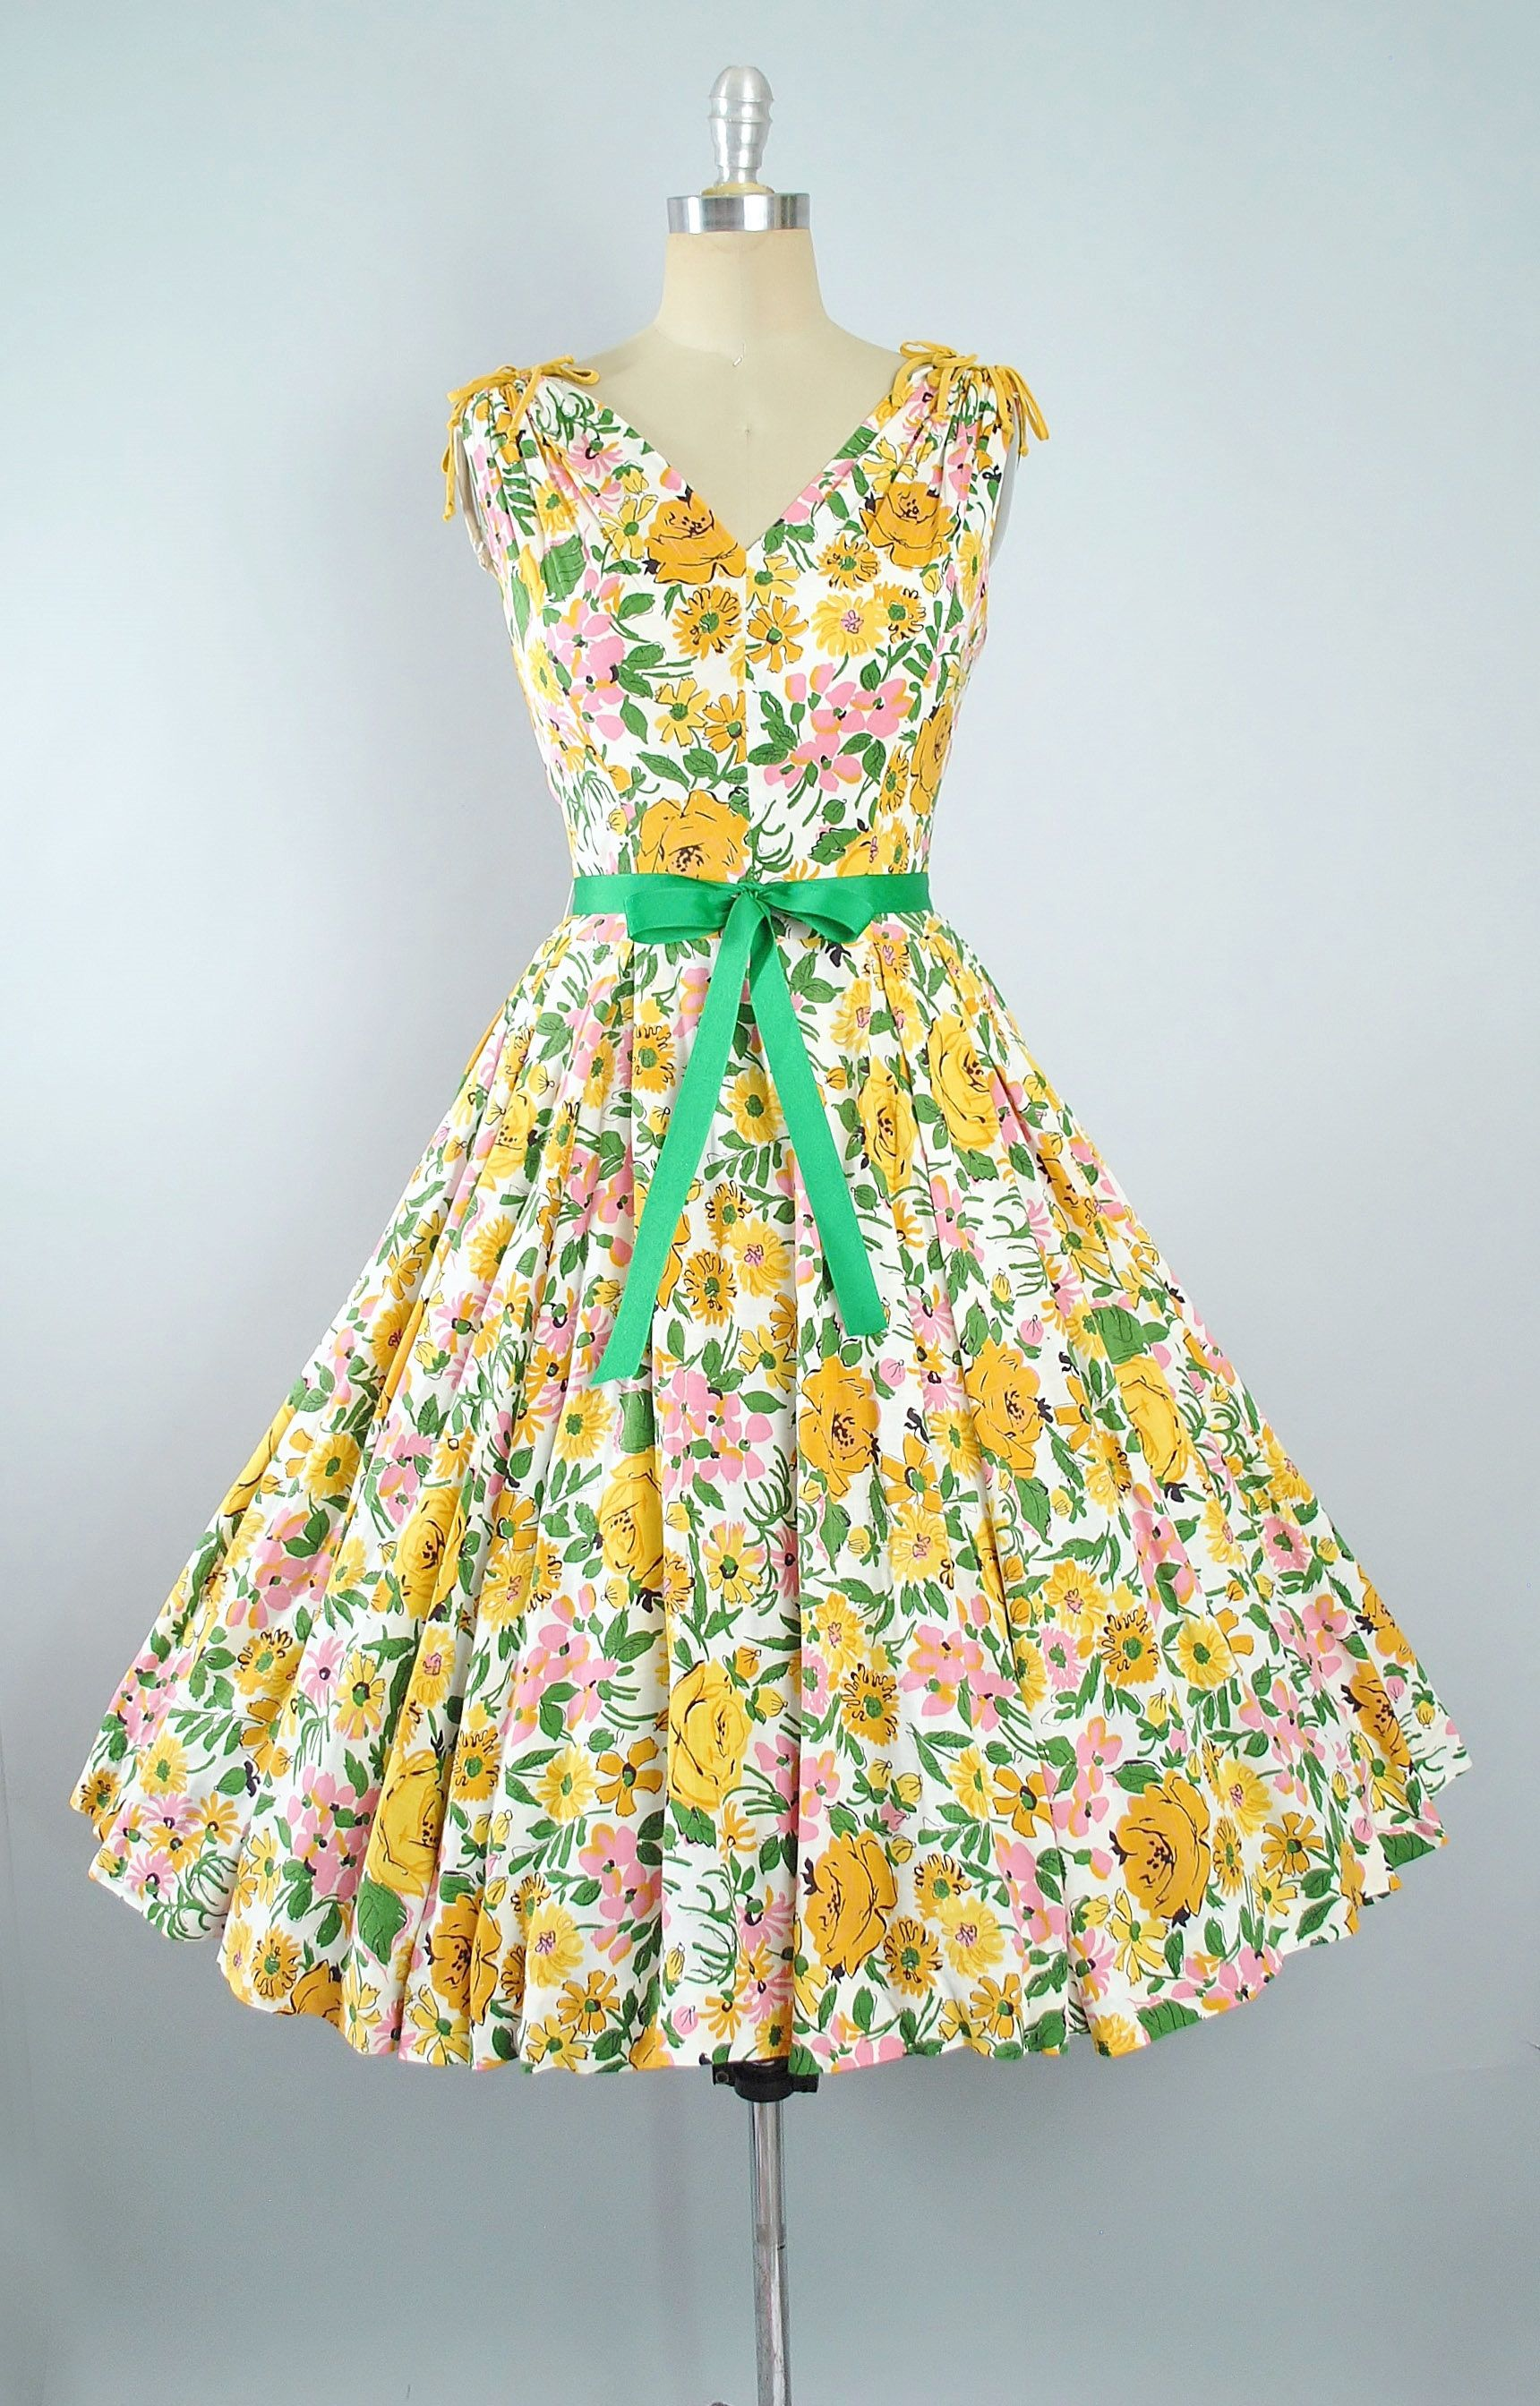 1add0c8324a Vintage 50s Floral Rose Print Dress   1950s Cotton Sundress Yellow Pink  Green ROSES Full Circle Skirt Pinup Picnic Garden Party Medium Large by ...